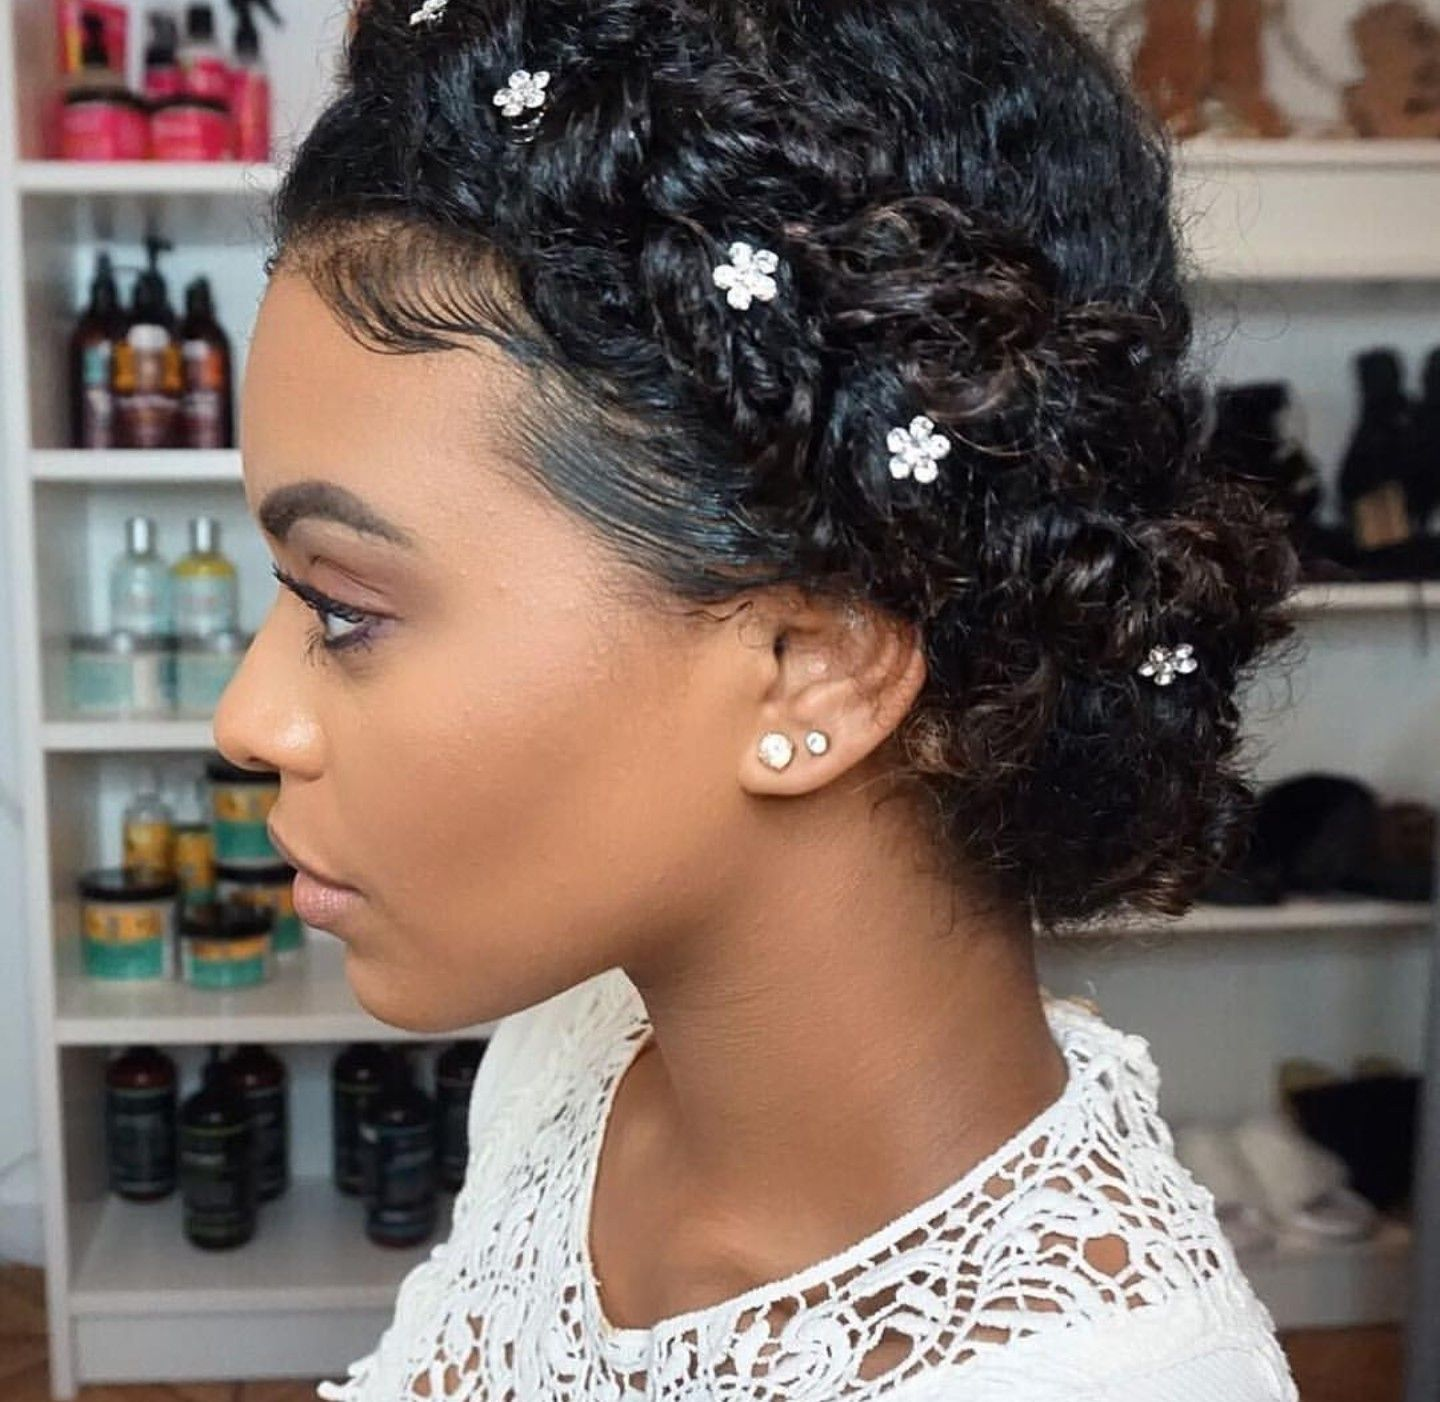 Pin By Patsy Fitzgerald On A Treasured Moment Natural Afro Hairstyles Natural Wedding Hairstyles Black Wedding Hairstyles